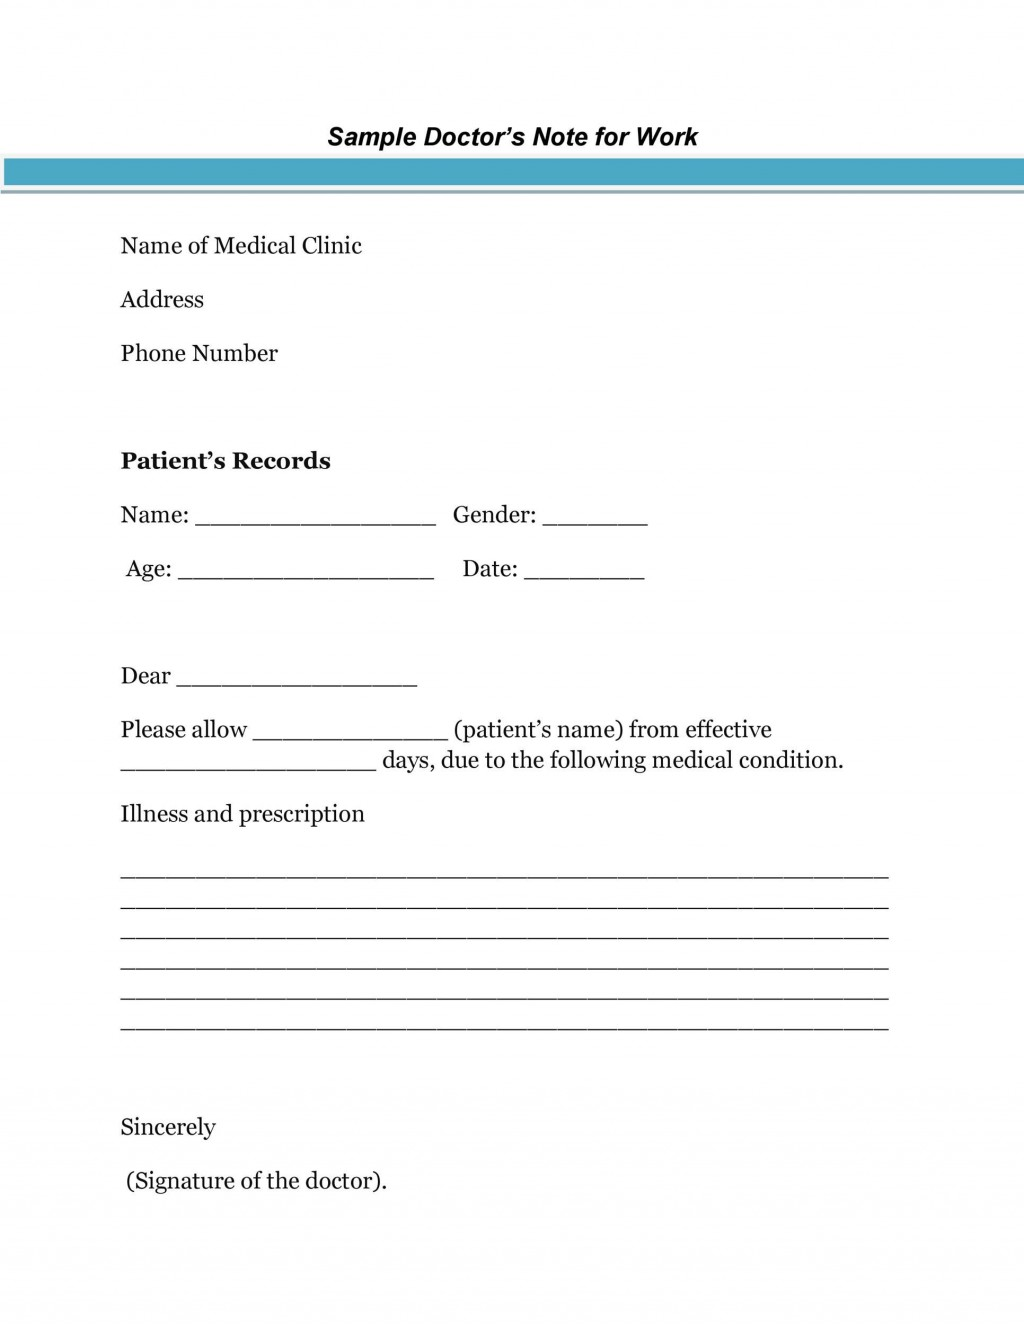 004 Staggering Dr Note Template For Work Image  Fake Doctor FreeLarge